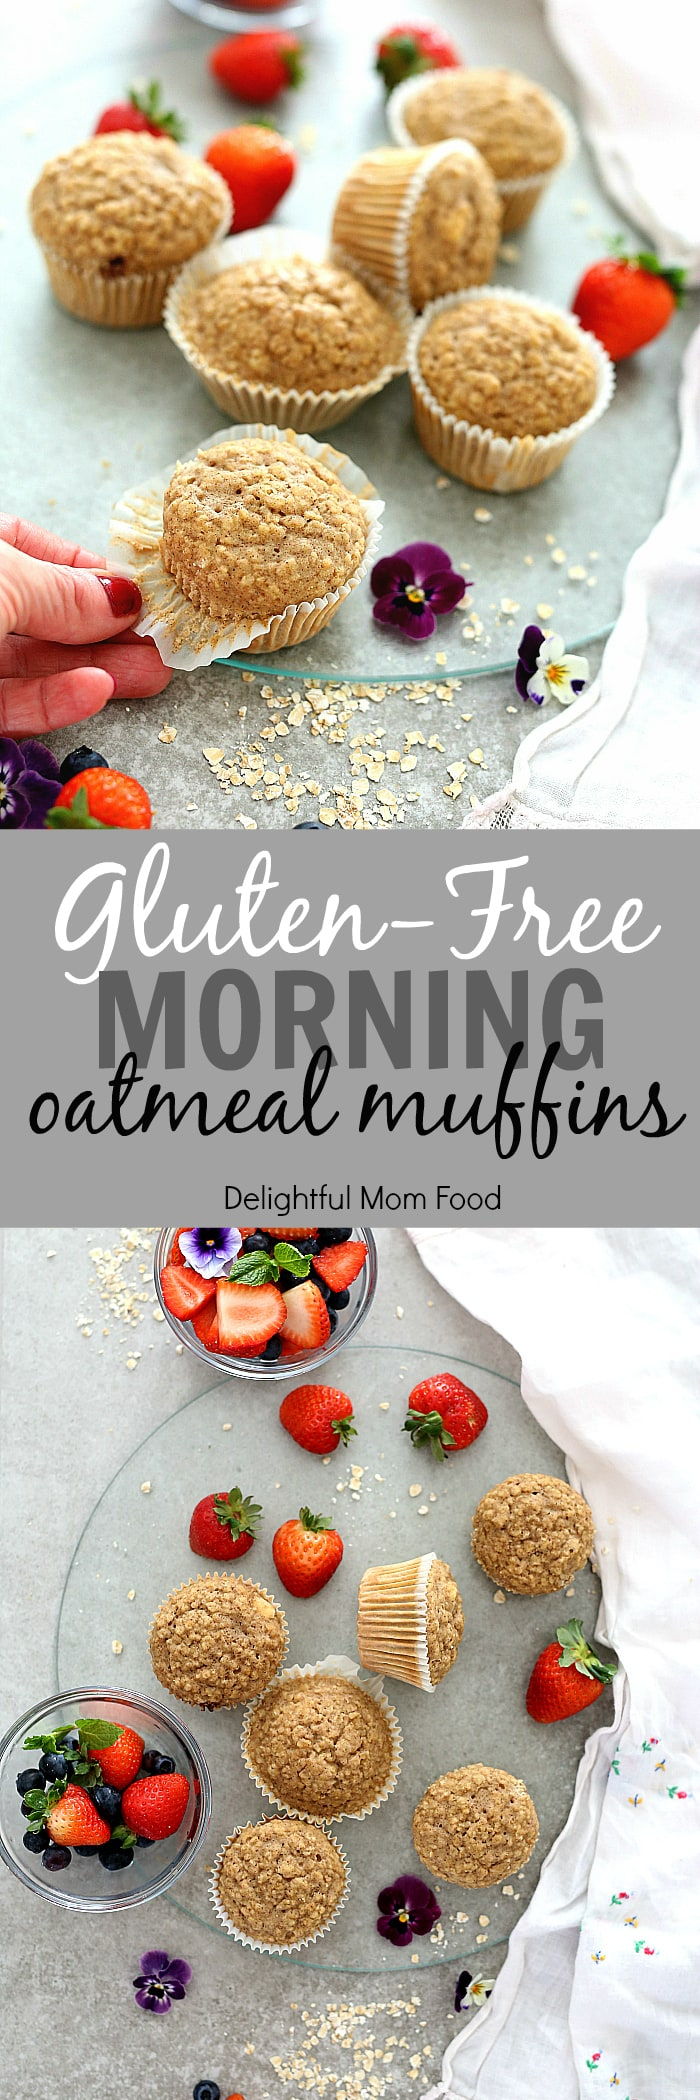 Morning oatmeal muffins are an easy gluten-free breakfast on-the-go! Not only will this oatmeal muffin recipe tantalize your taste buds, the oats will make your heart smile too! #oatmeal #muffins #muffin #recipe #glutenfree #breakfast #brunch #baked | Recipe at delightfulmomfood.com